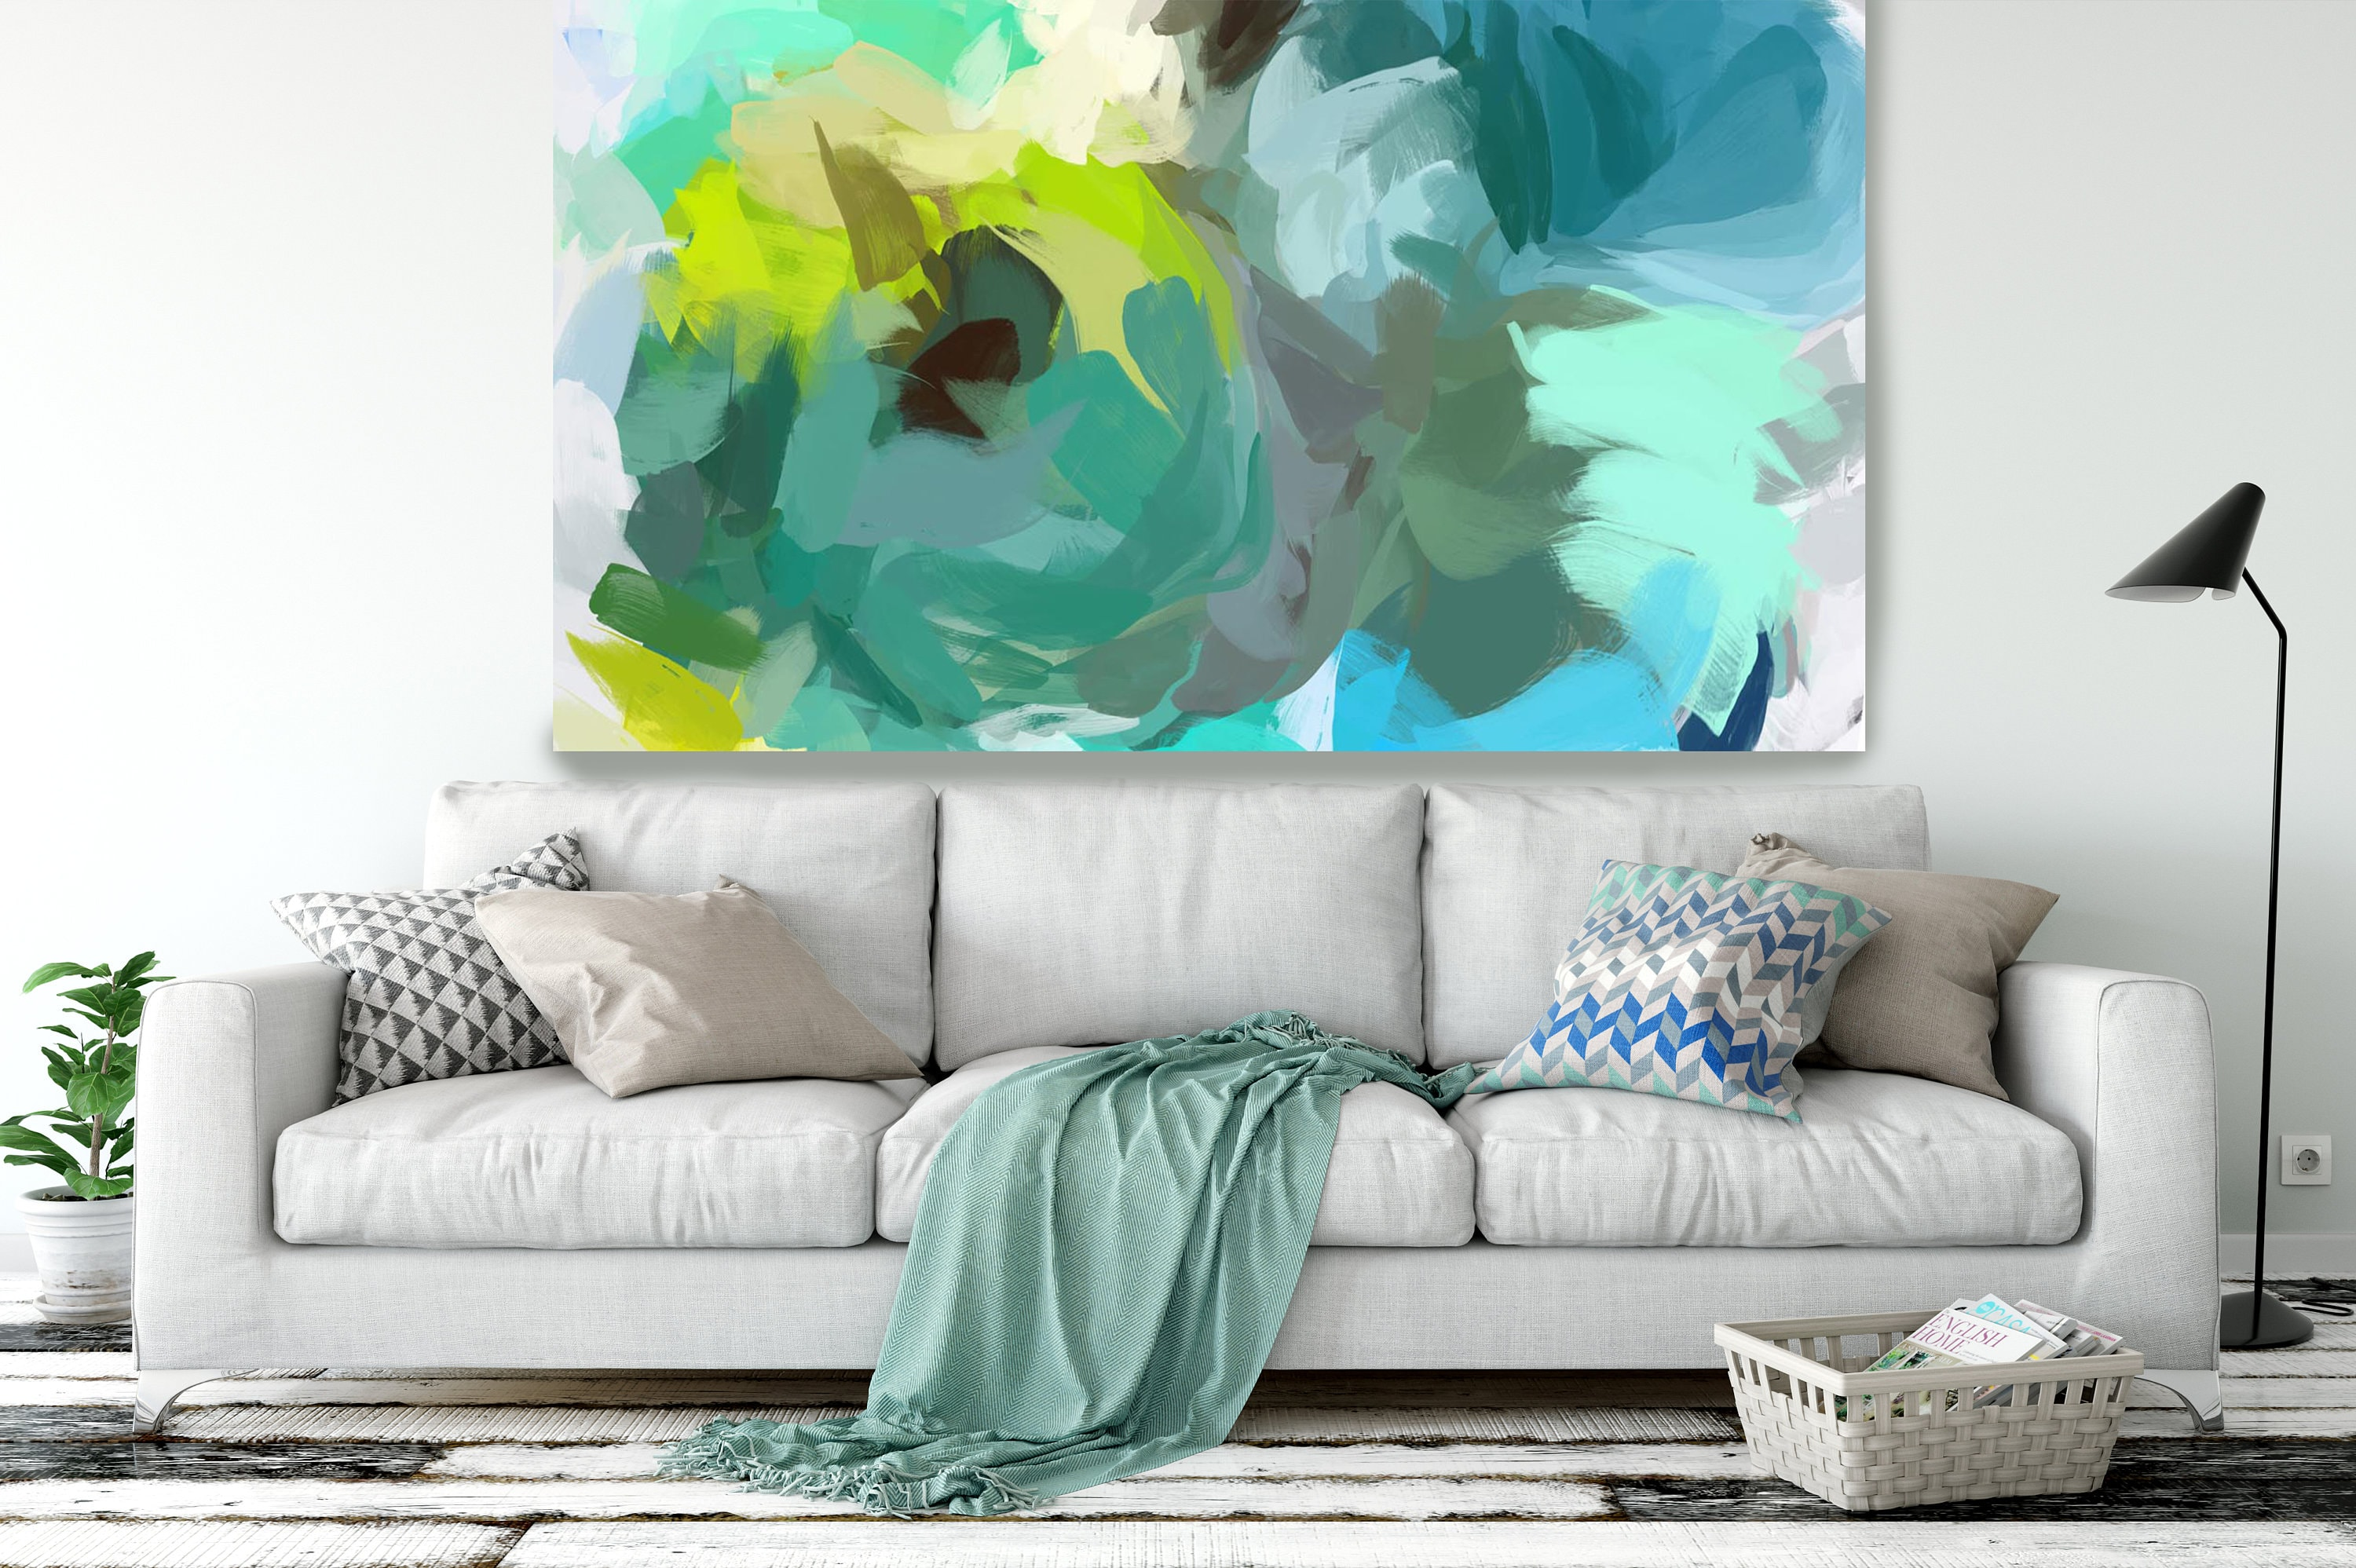 The Shades Of Green Abstract 2 Modern Green Canvas Art Print Painting Green Abstract White Green Decor Up To 80 By Irena Orlov